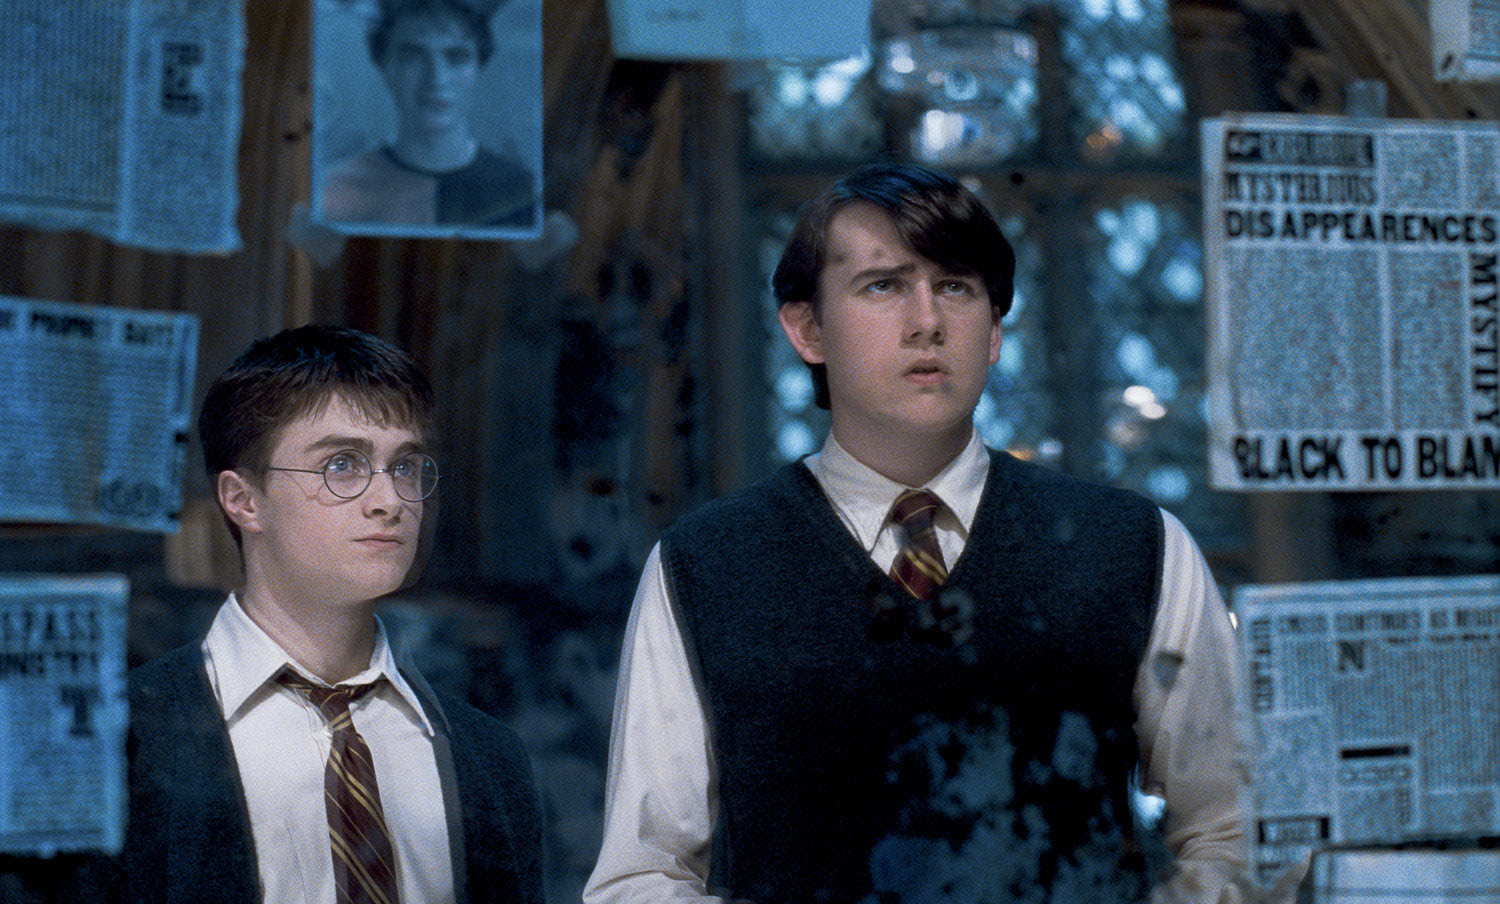 Harry and Neville in the Room of Requirement